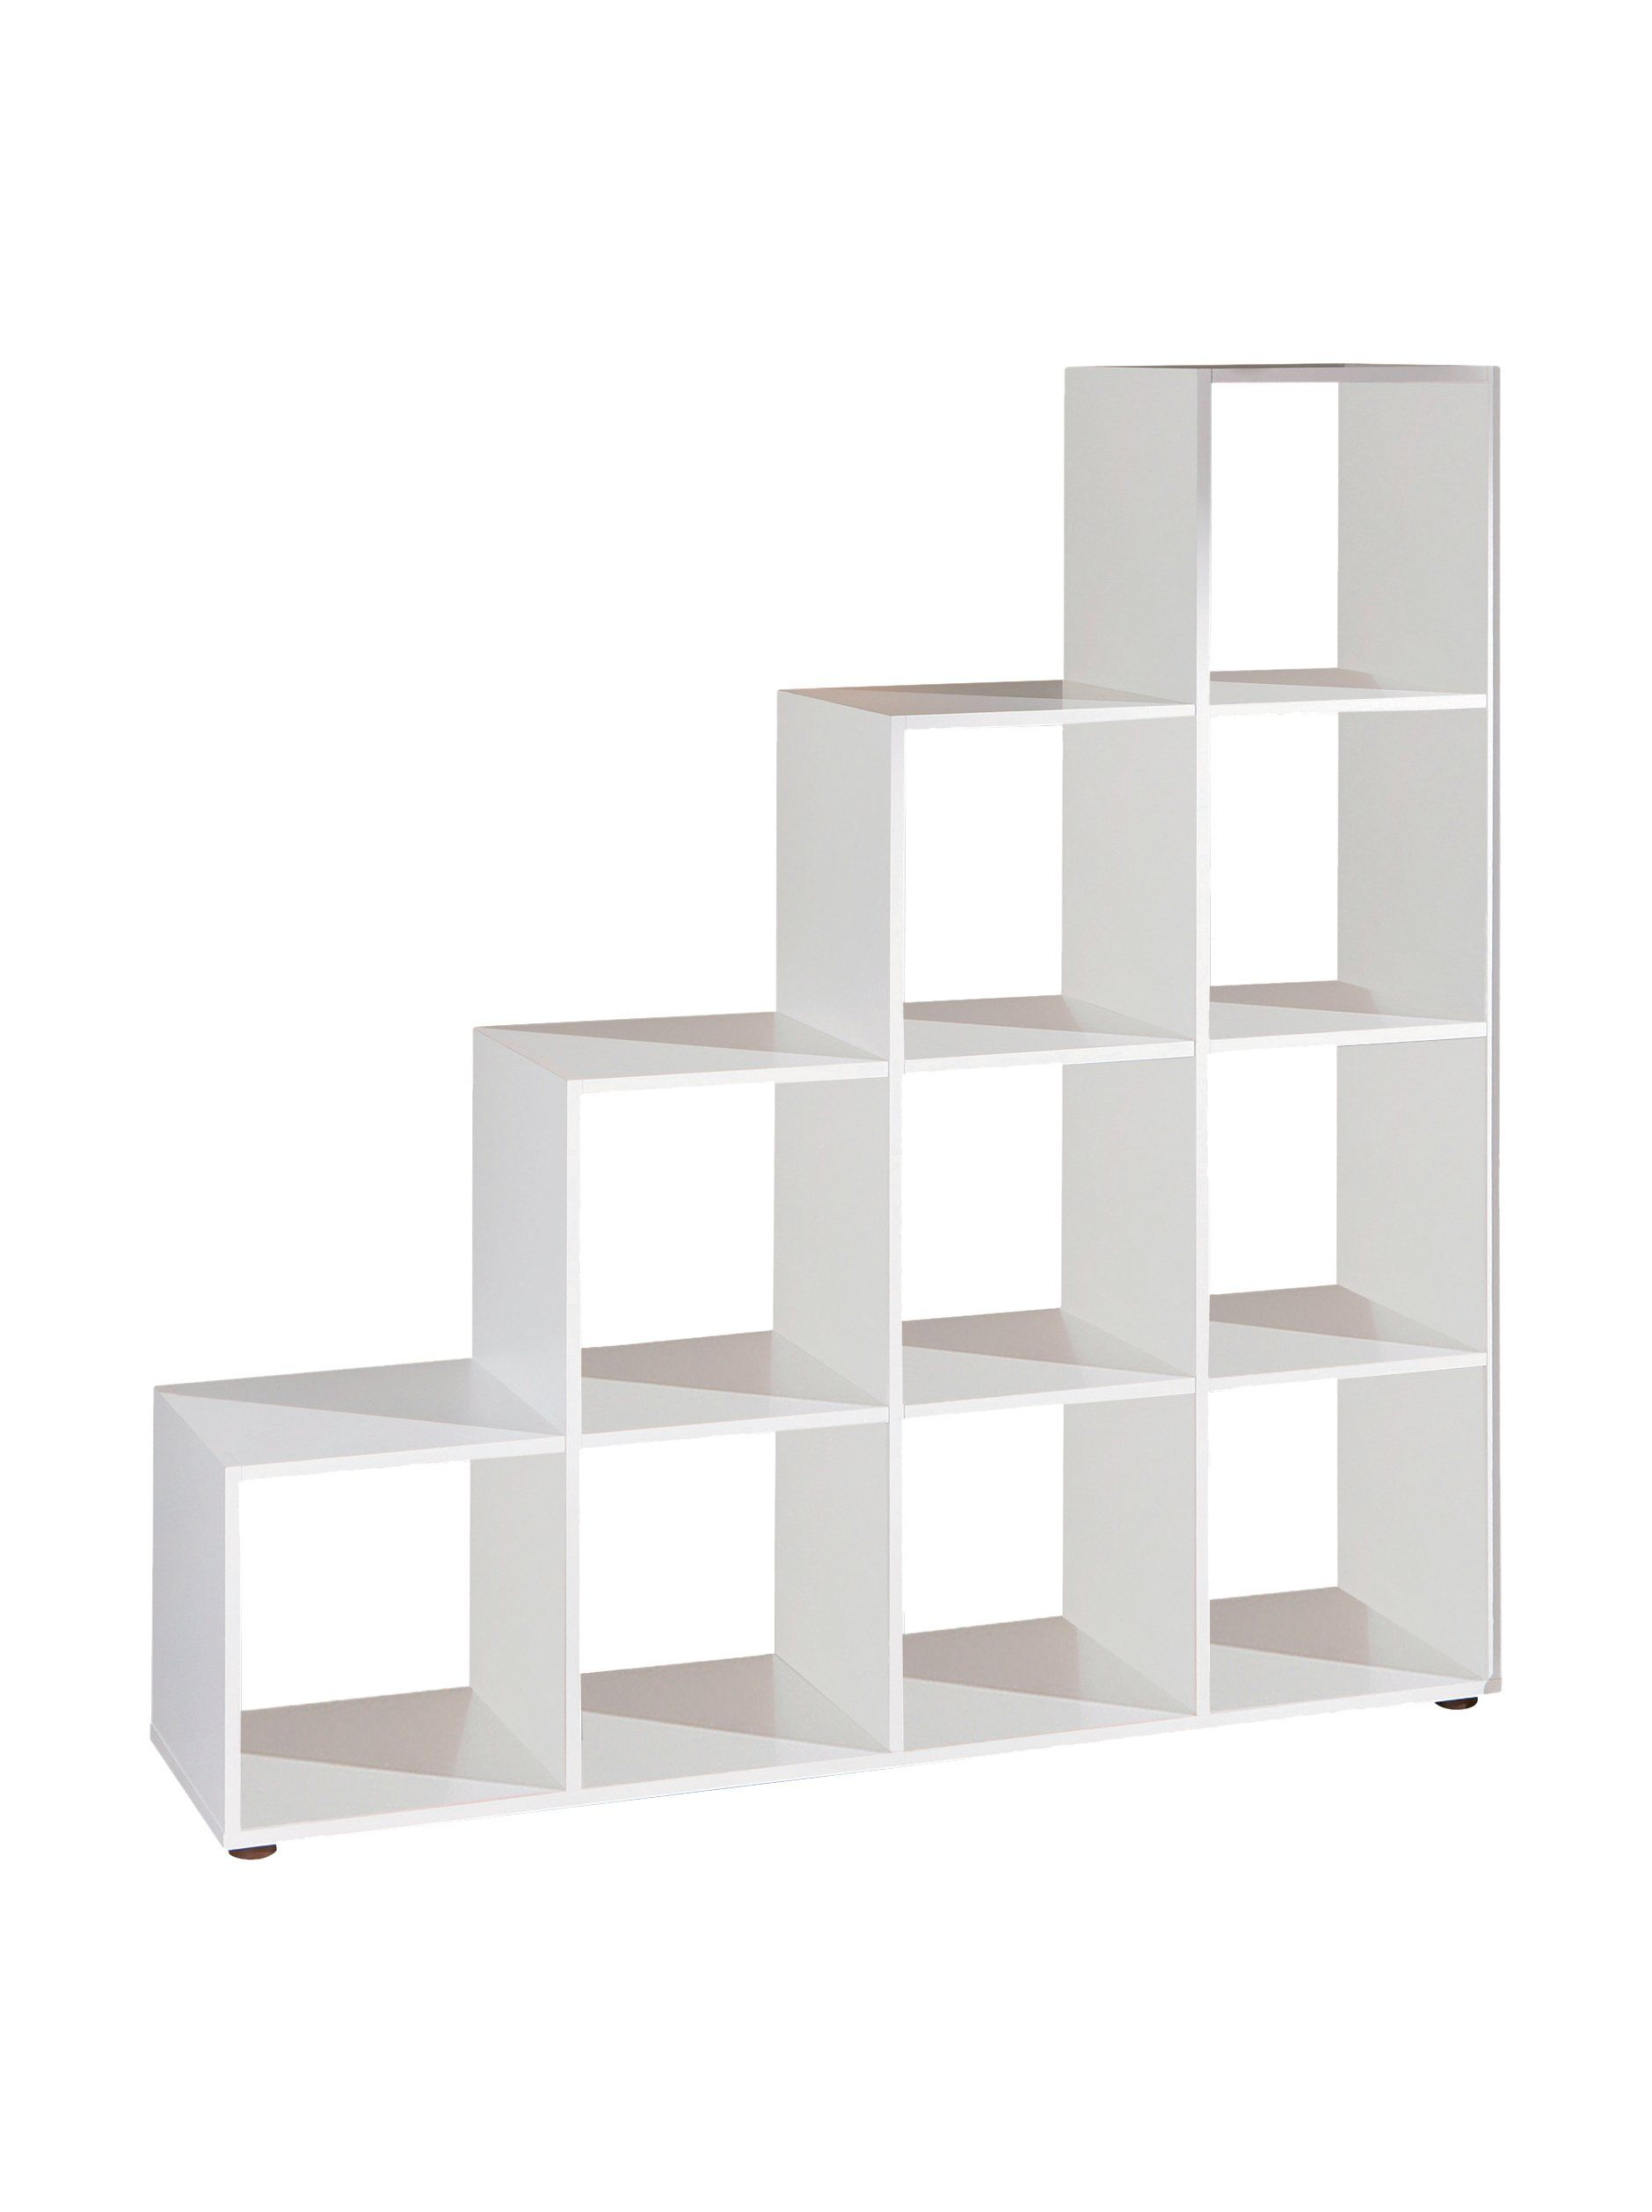 Caboto decorative shelving room divider open stepped shelving unit with 10 compartments white